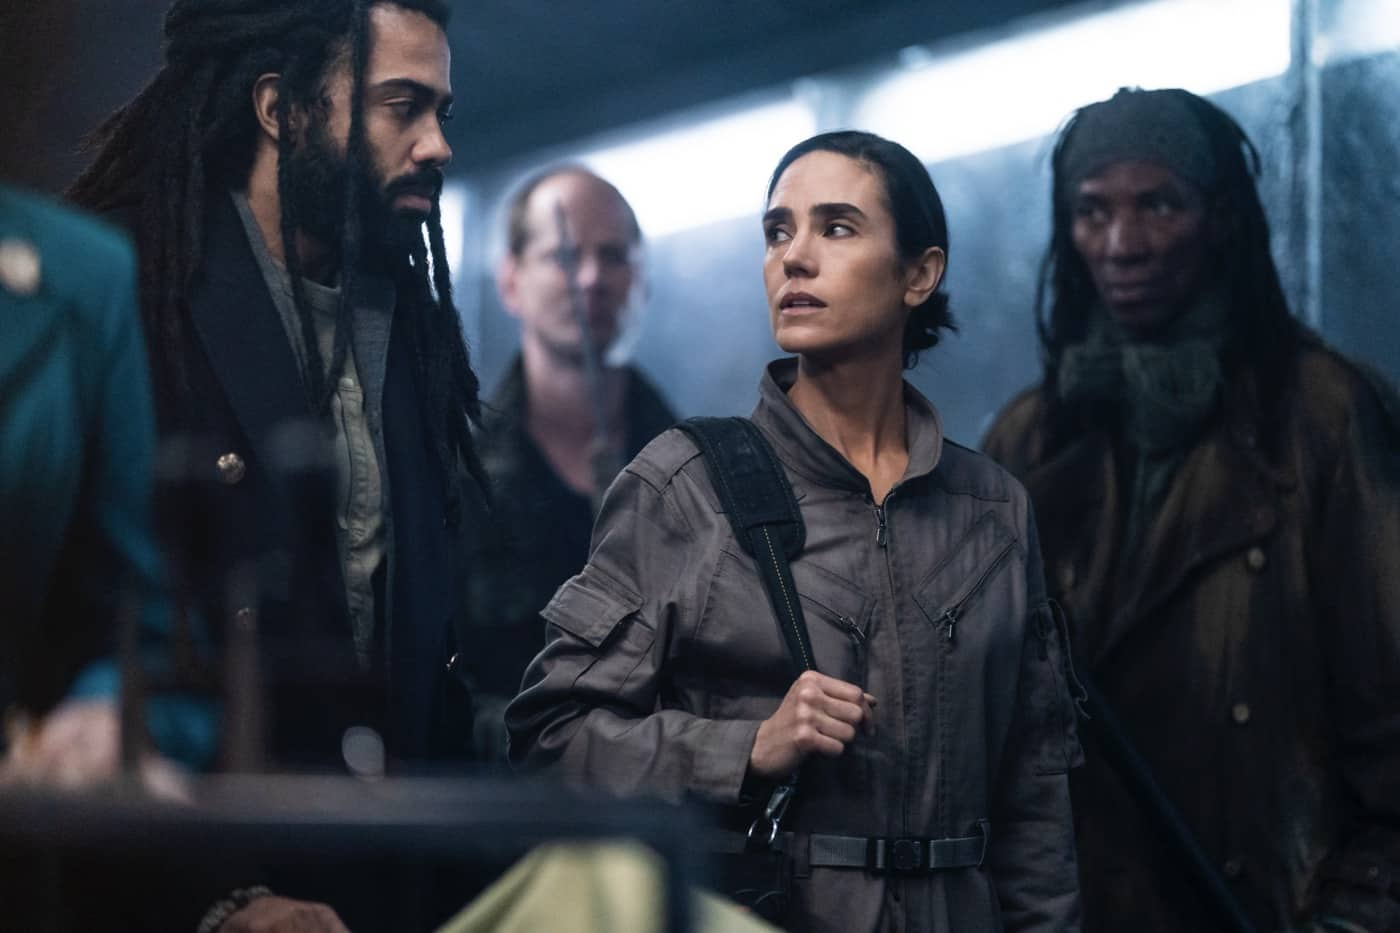 SNOWPIERCER Season 2 Episode 3 A Great Odyssey